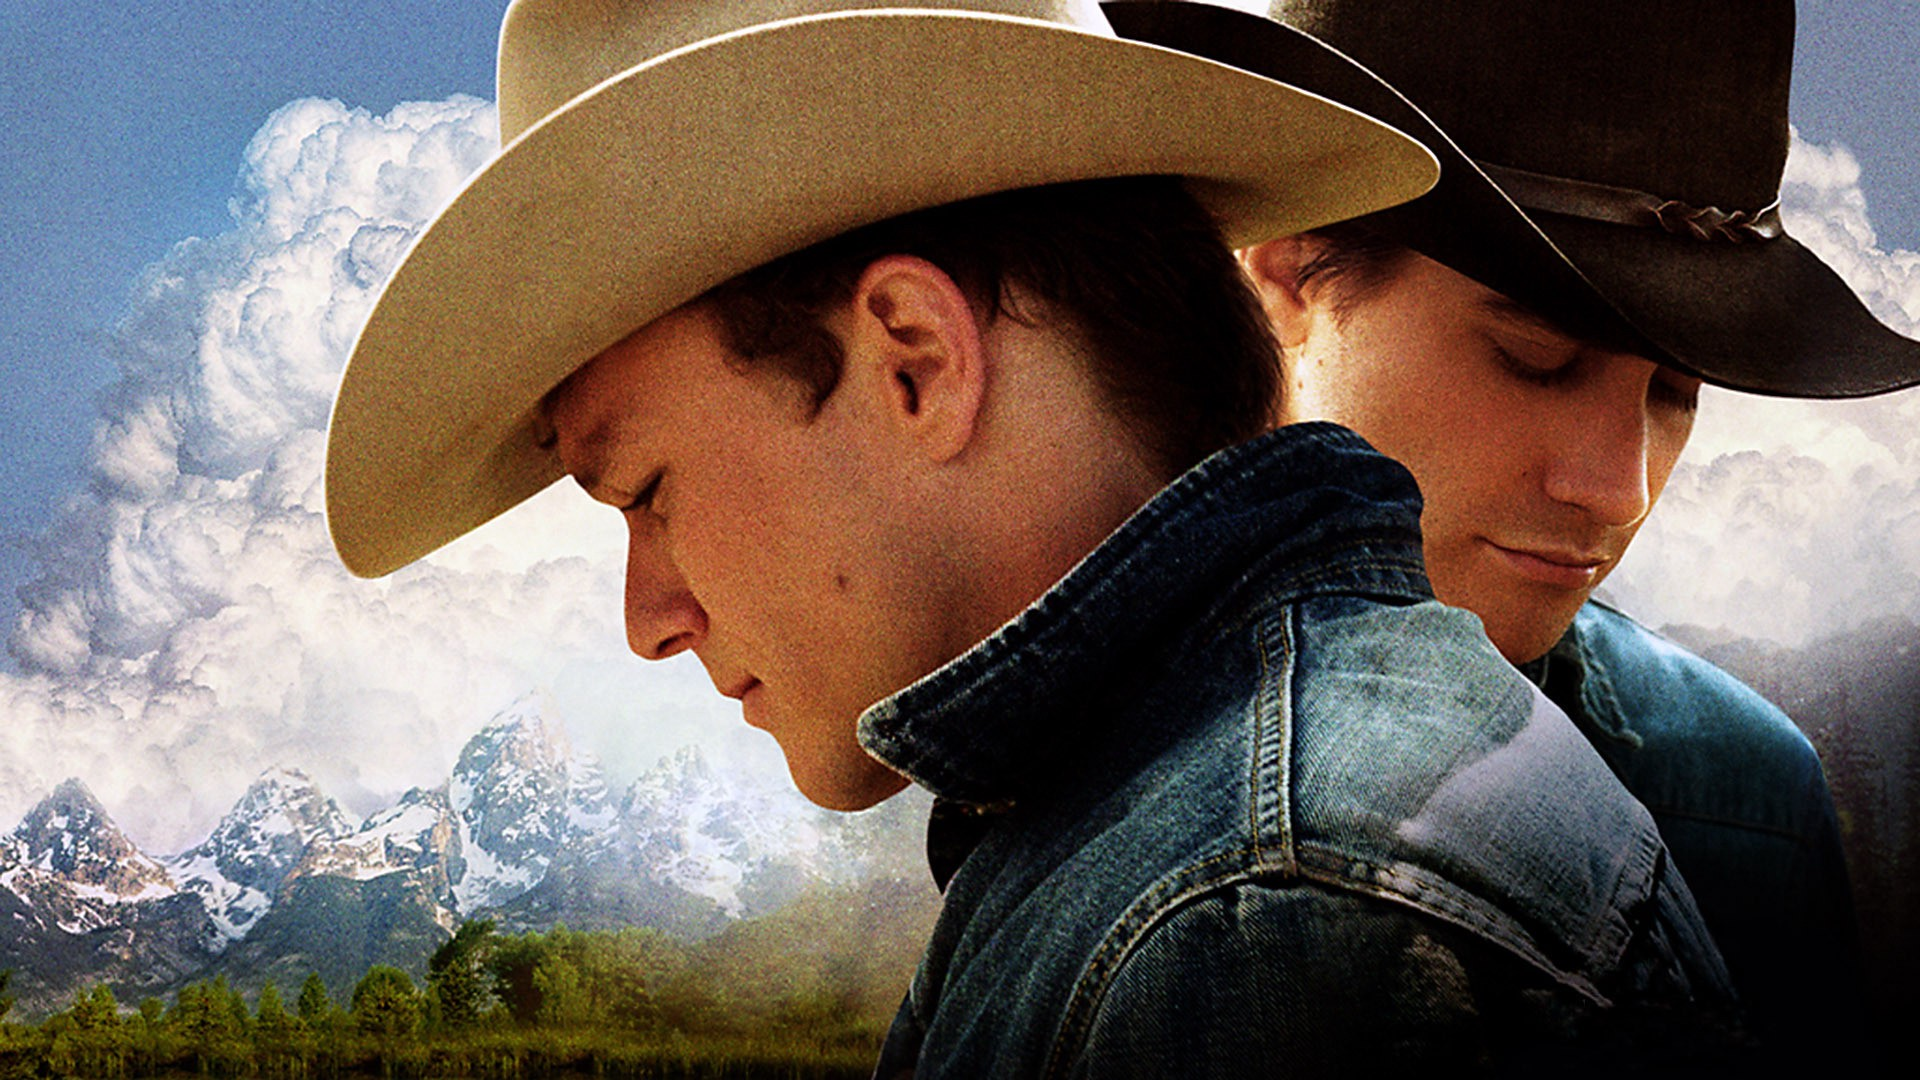 Join. jack sexual pass brokeback mountain are